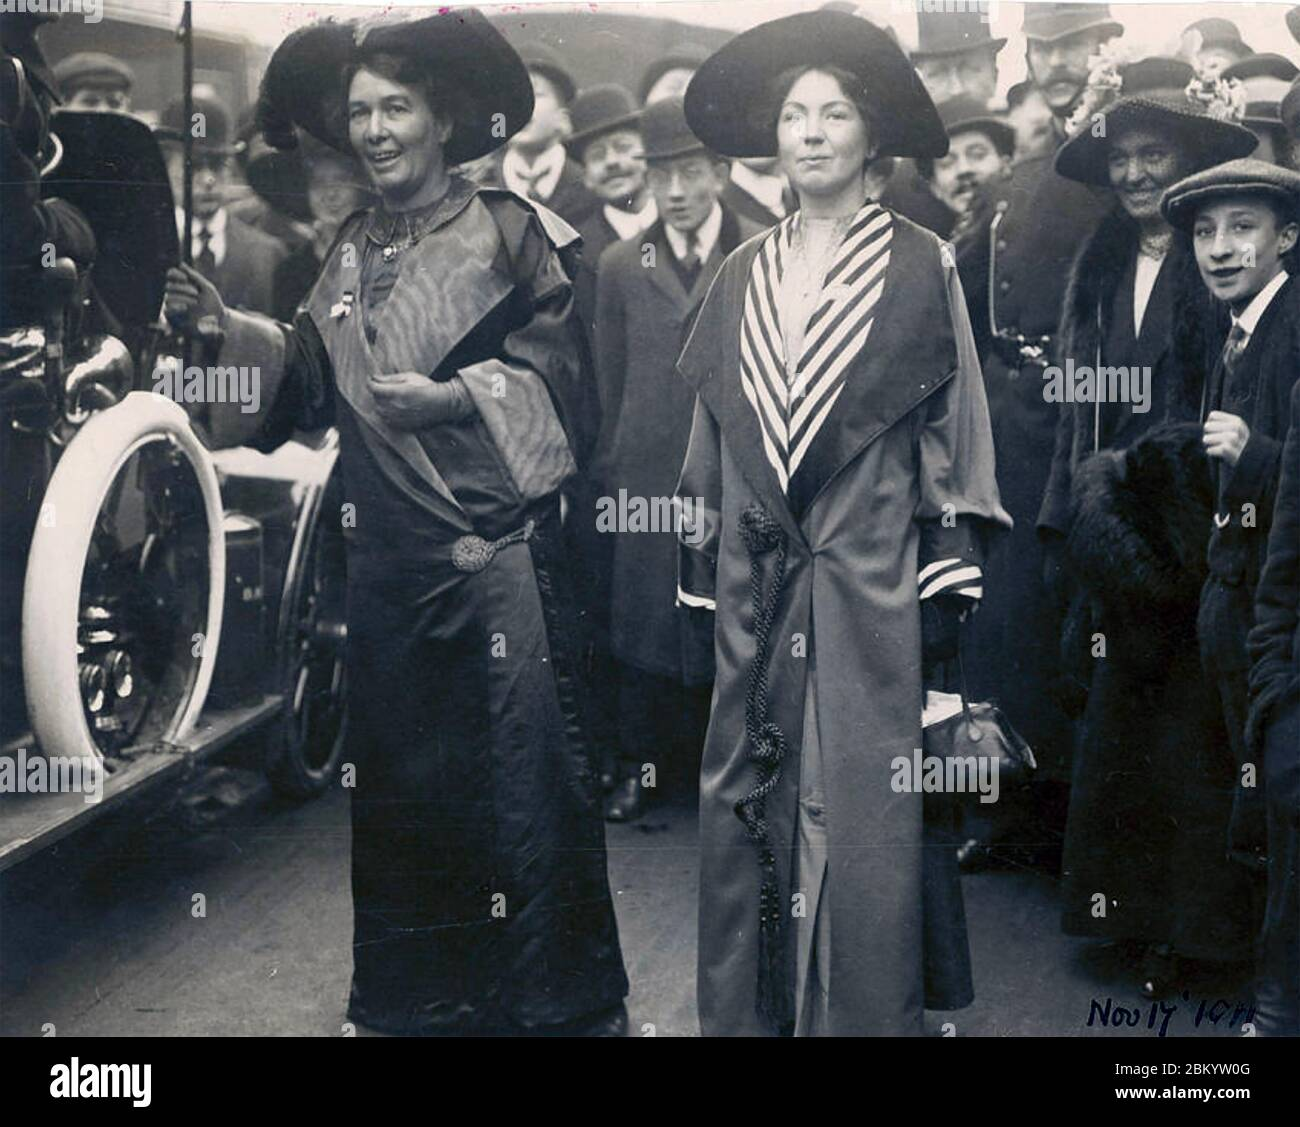 CHRISTABEL PANKHURST at right with her mother Emmeline. The photo of the suffragette leaders is dated on 17 November 1911. Stock Photo